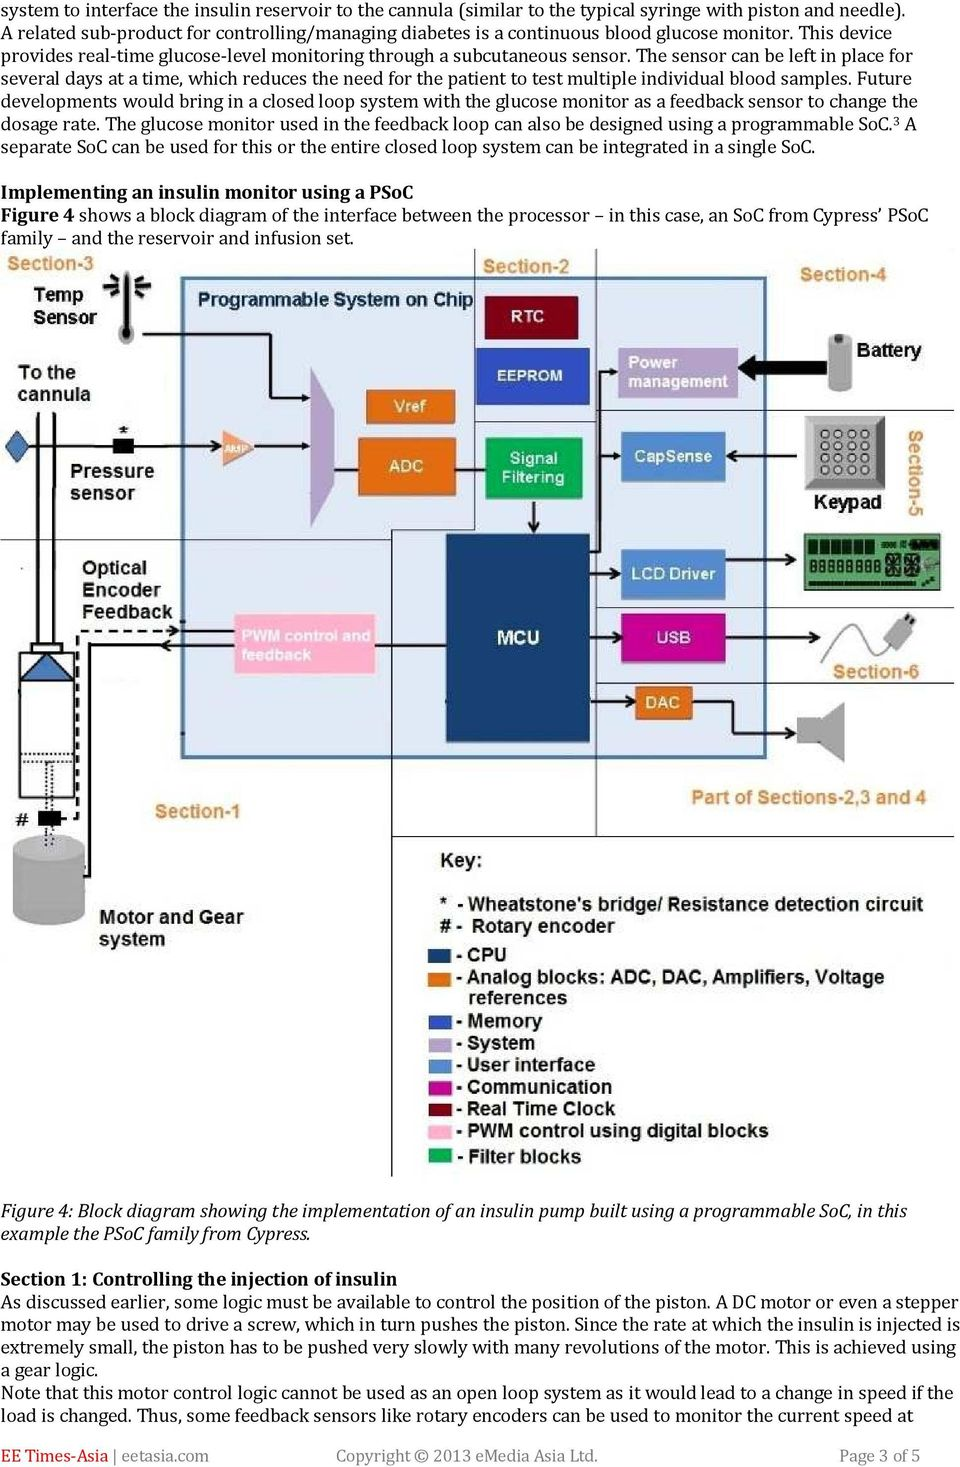 How To Design An Insulin Pump Pdf Psoc 3 Block Diagram The Sensor Can Be Left In Place For Several Days At A Time Which Reduces